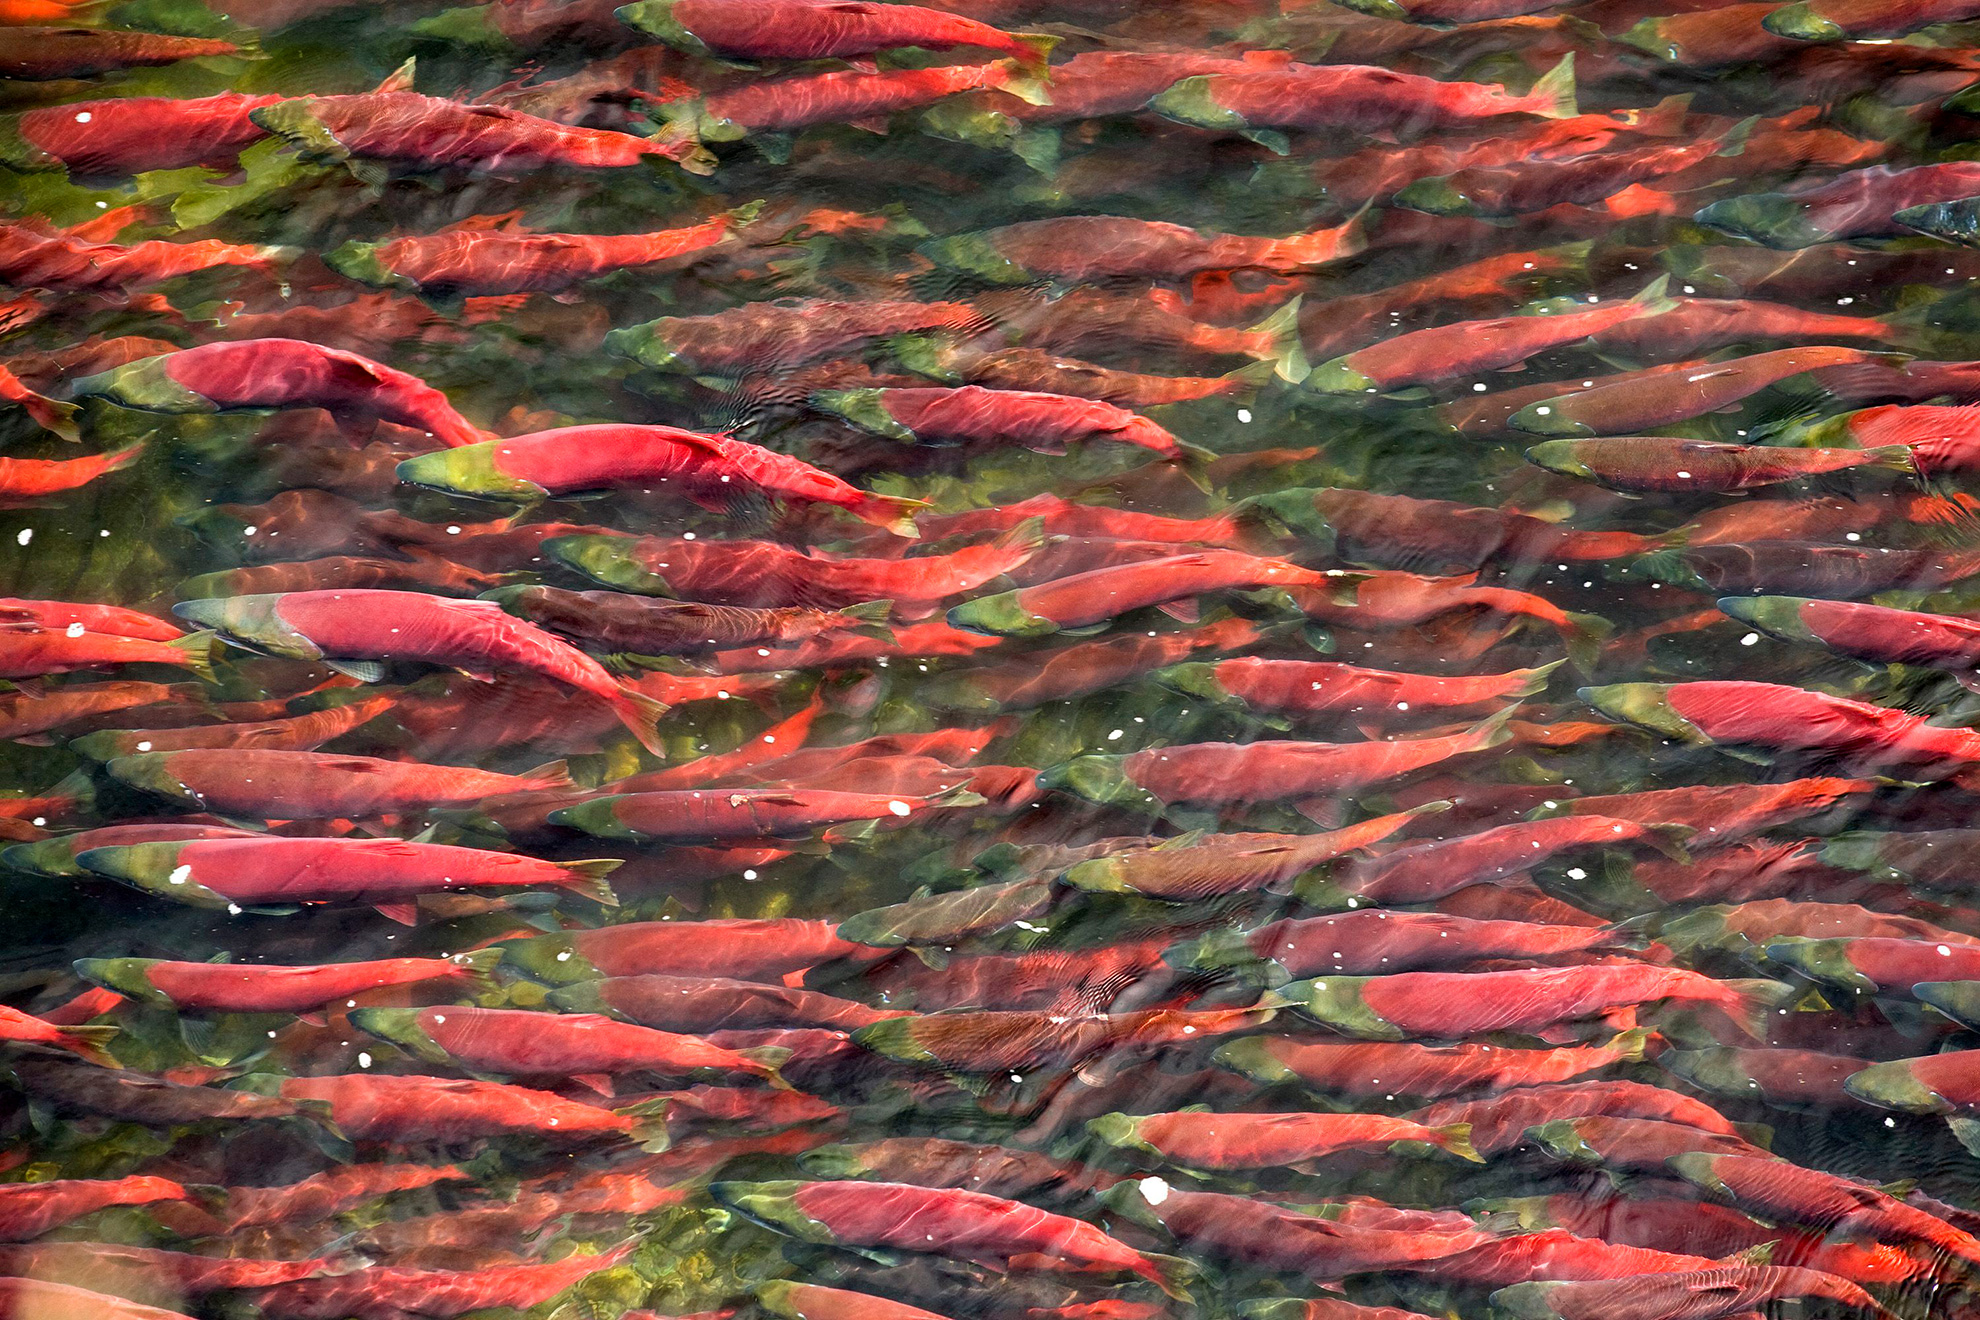 Sockeye salmon run in the Bristol Bay watershed.